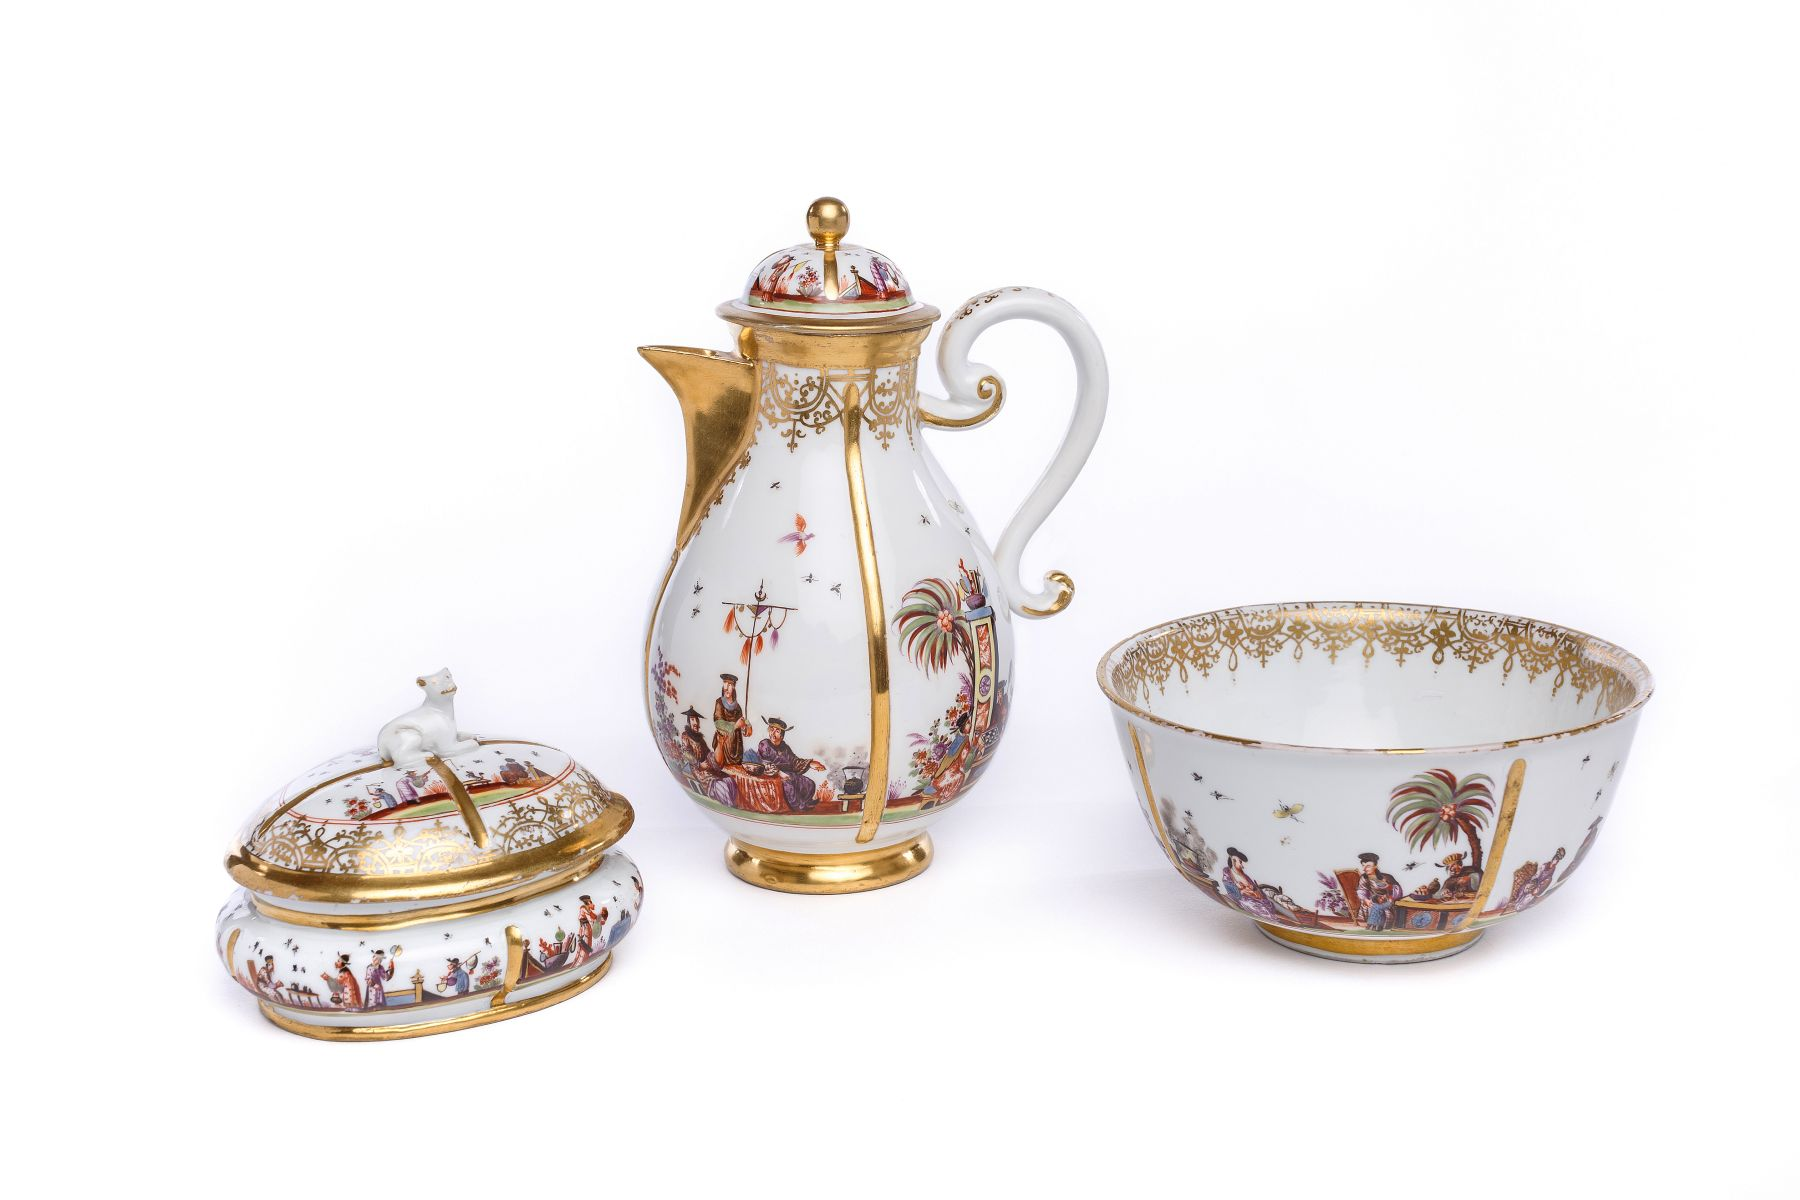 "#4 Coffee service with ""Chinoiserie"" scenes by Johann Gregorius Höroldt (1696-1775), Meissen 